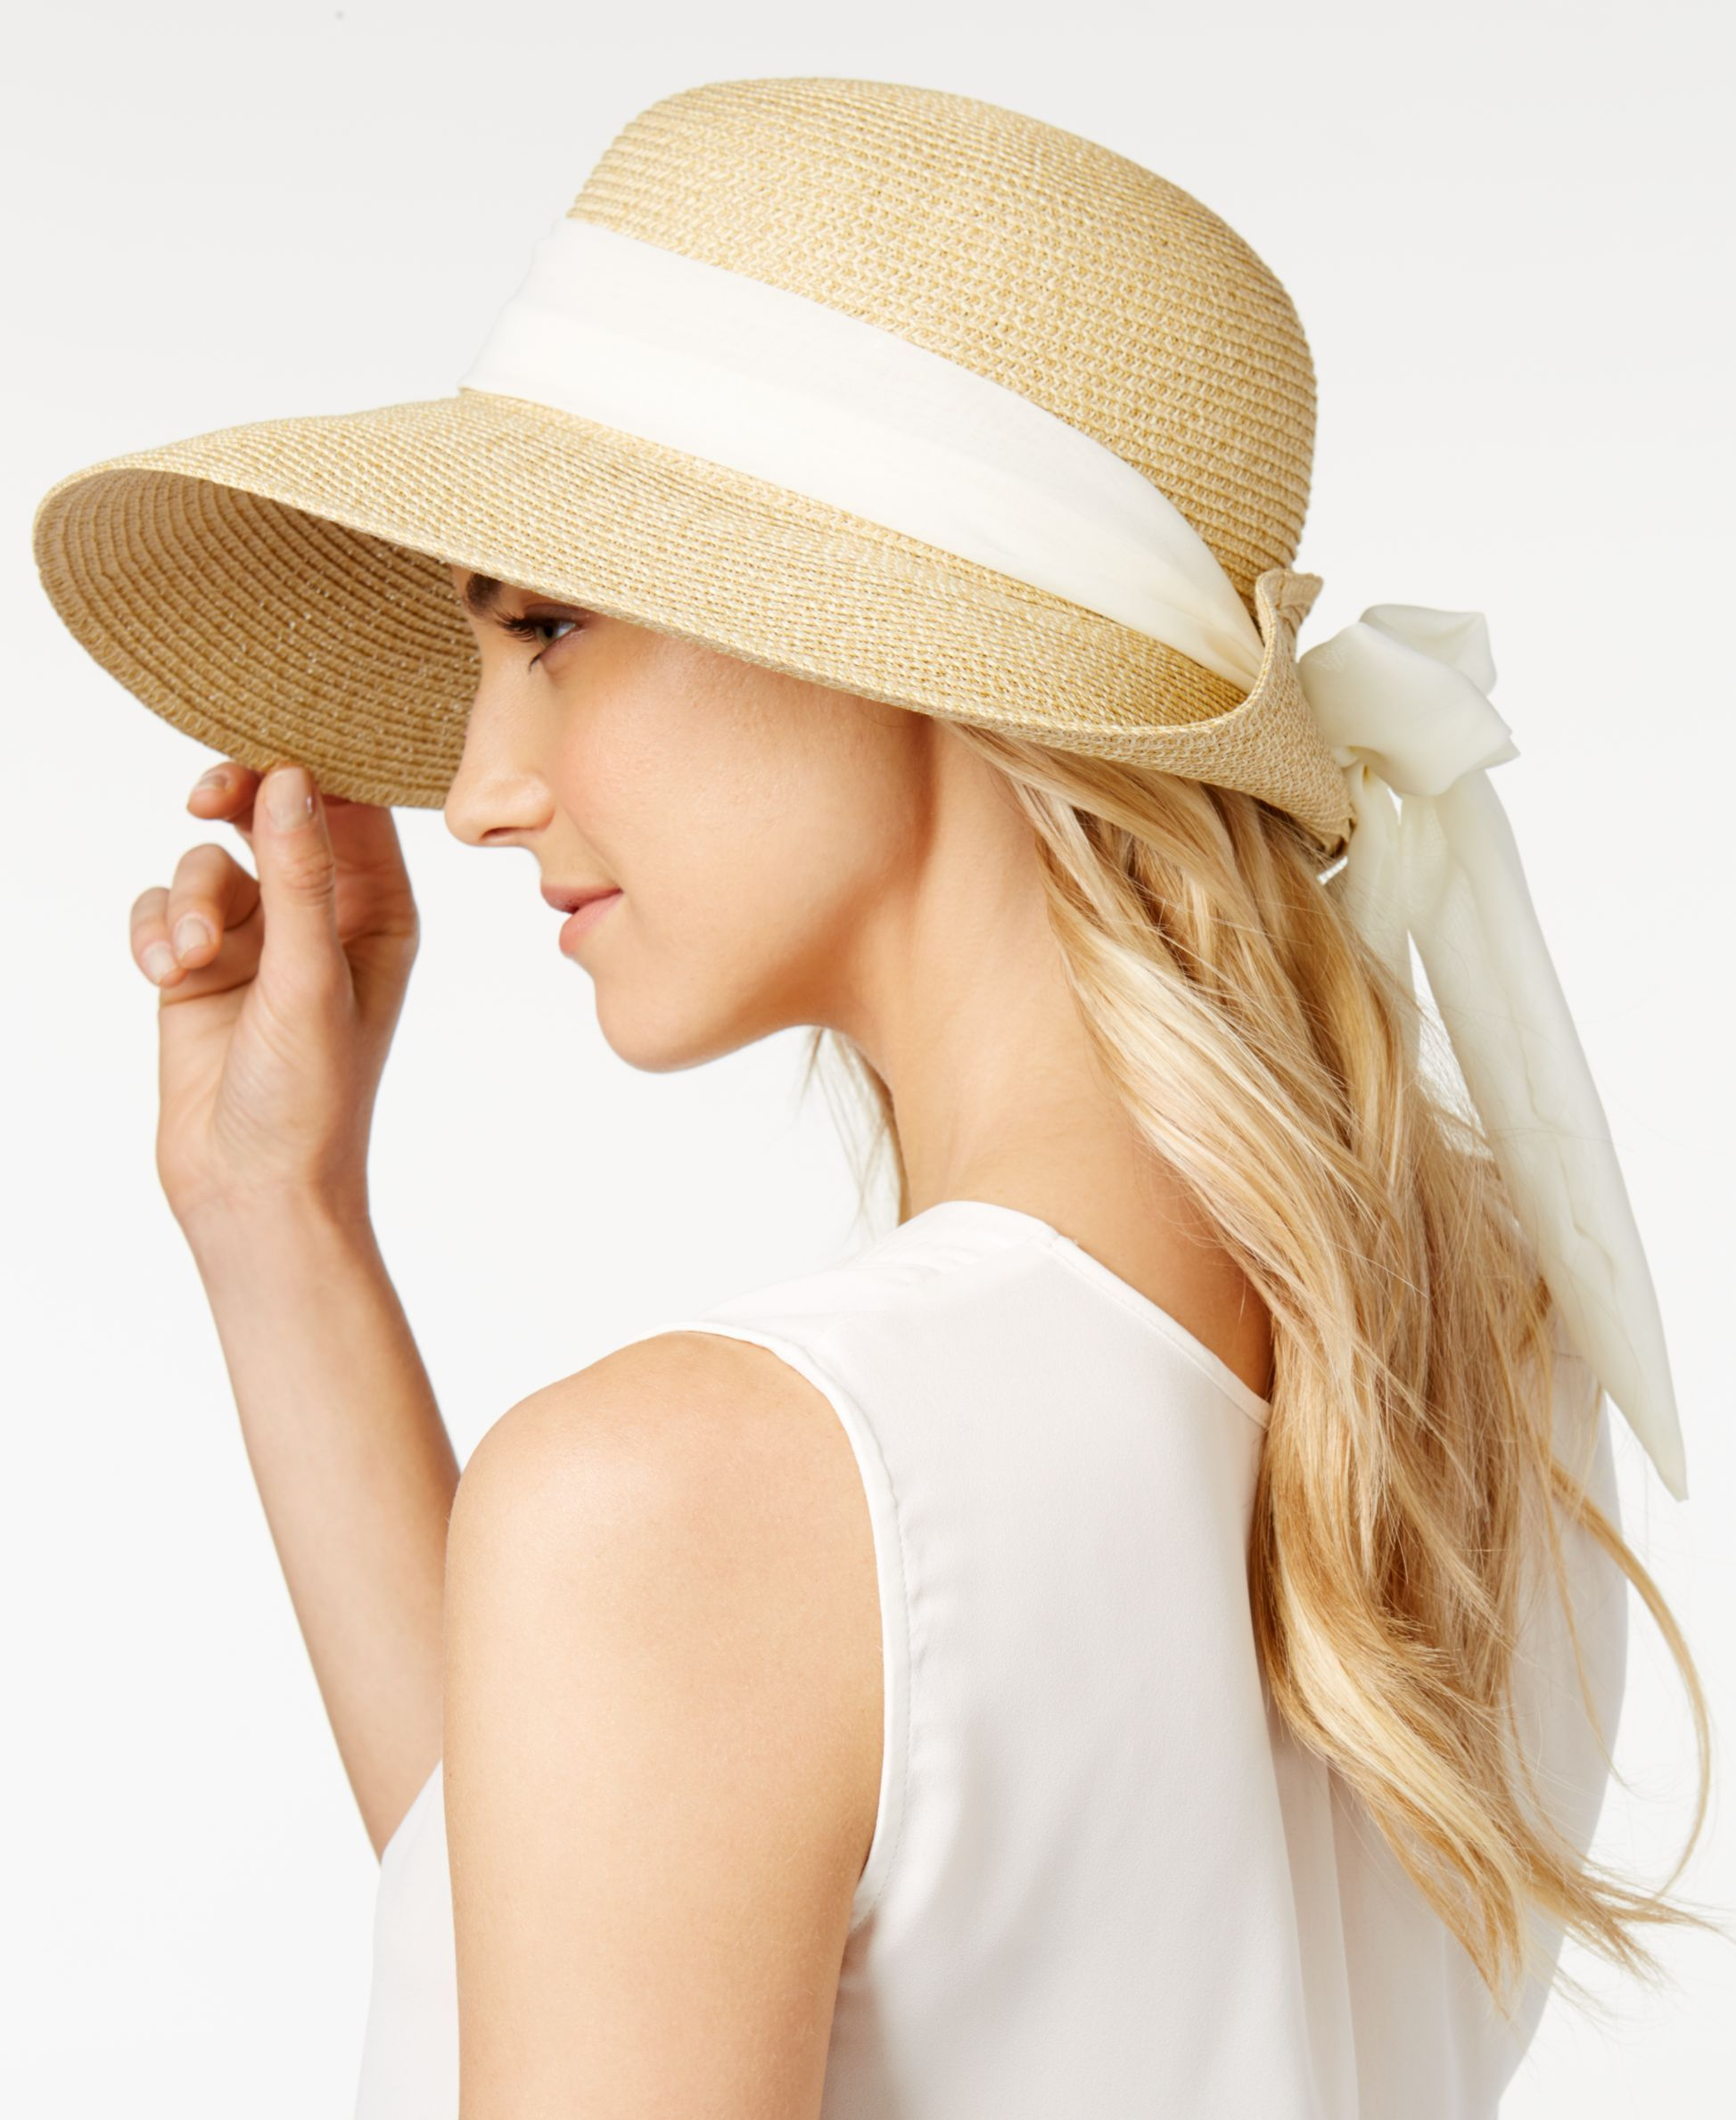 0a359223a995b Say hello to a full season of chic looks with Nine West s packable sun hat